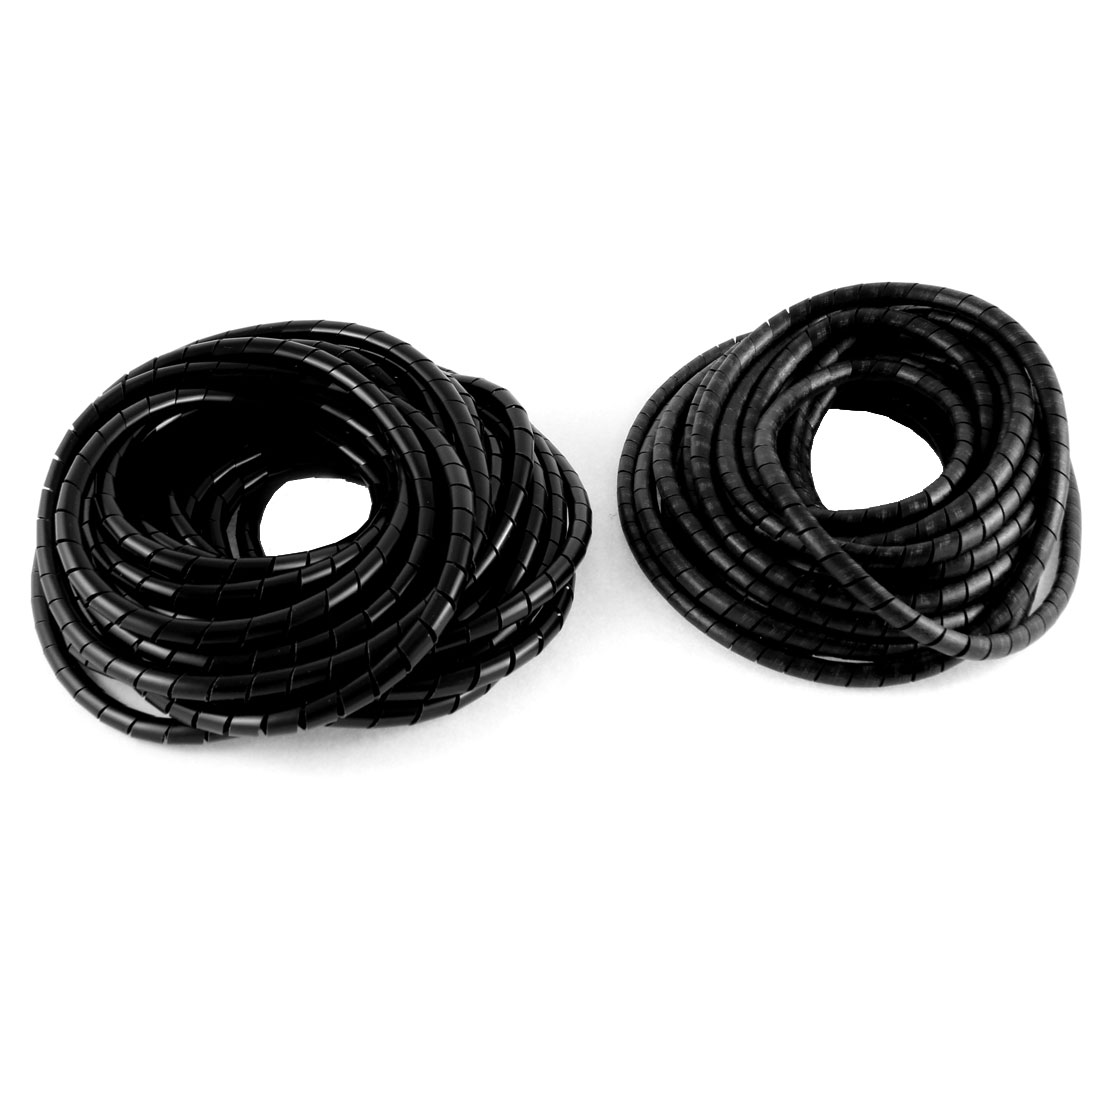 2pcs 33ft 10M Long 8mm OD Flexible Wire Spiral Wrap Band Cable Manager Protector